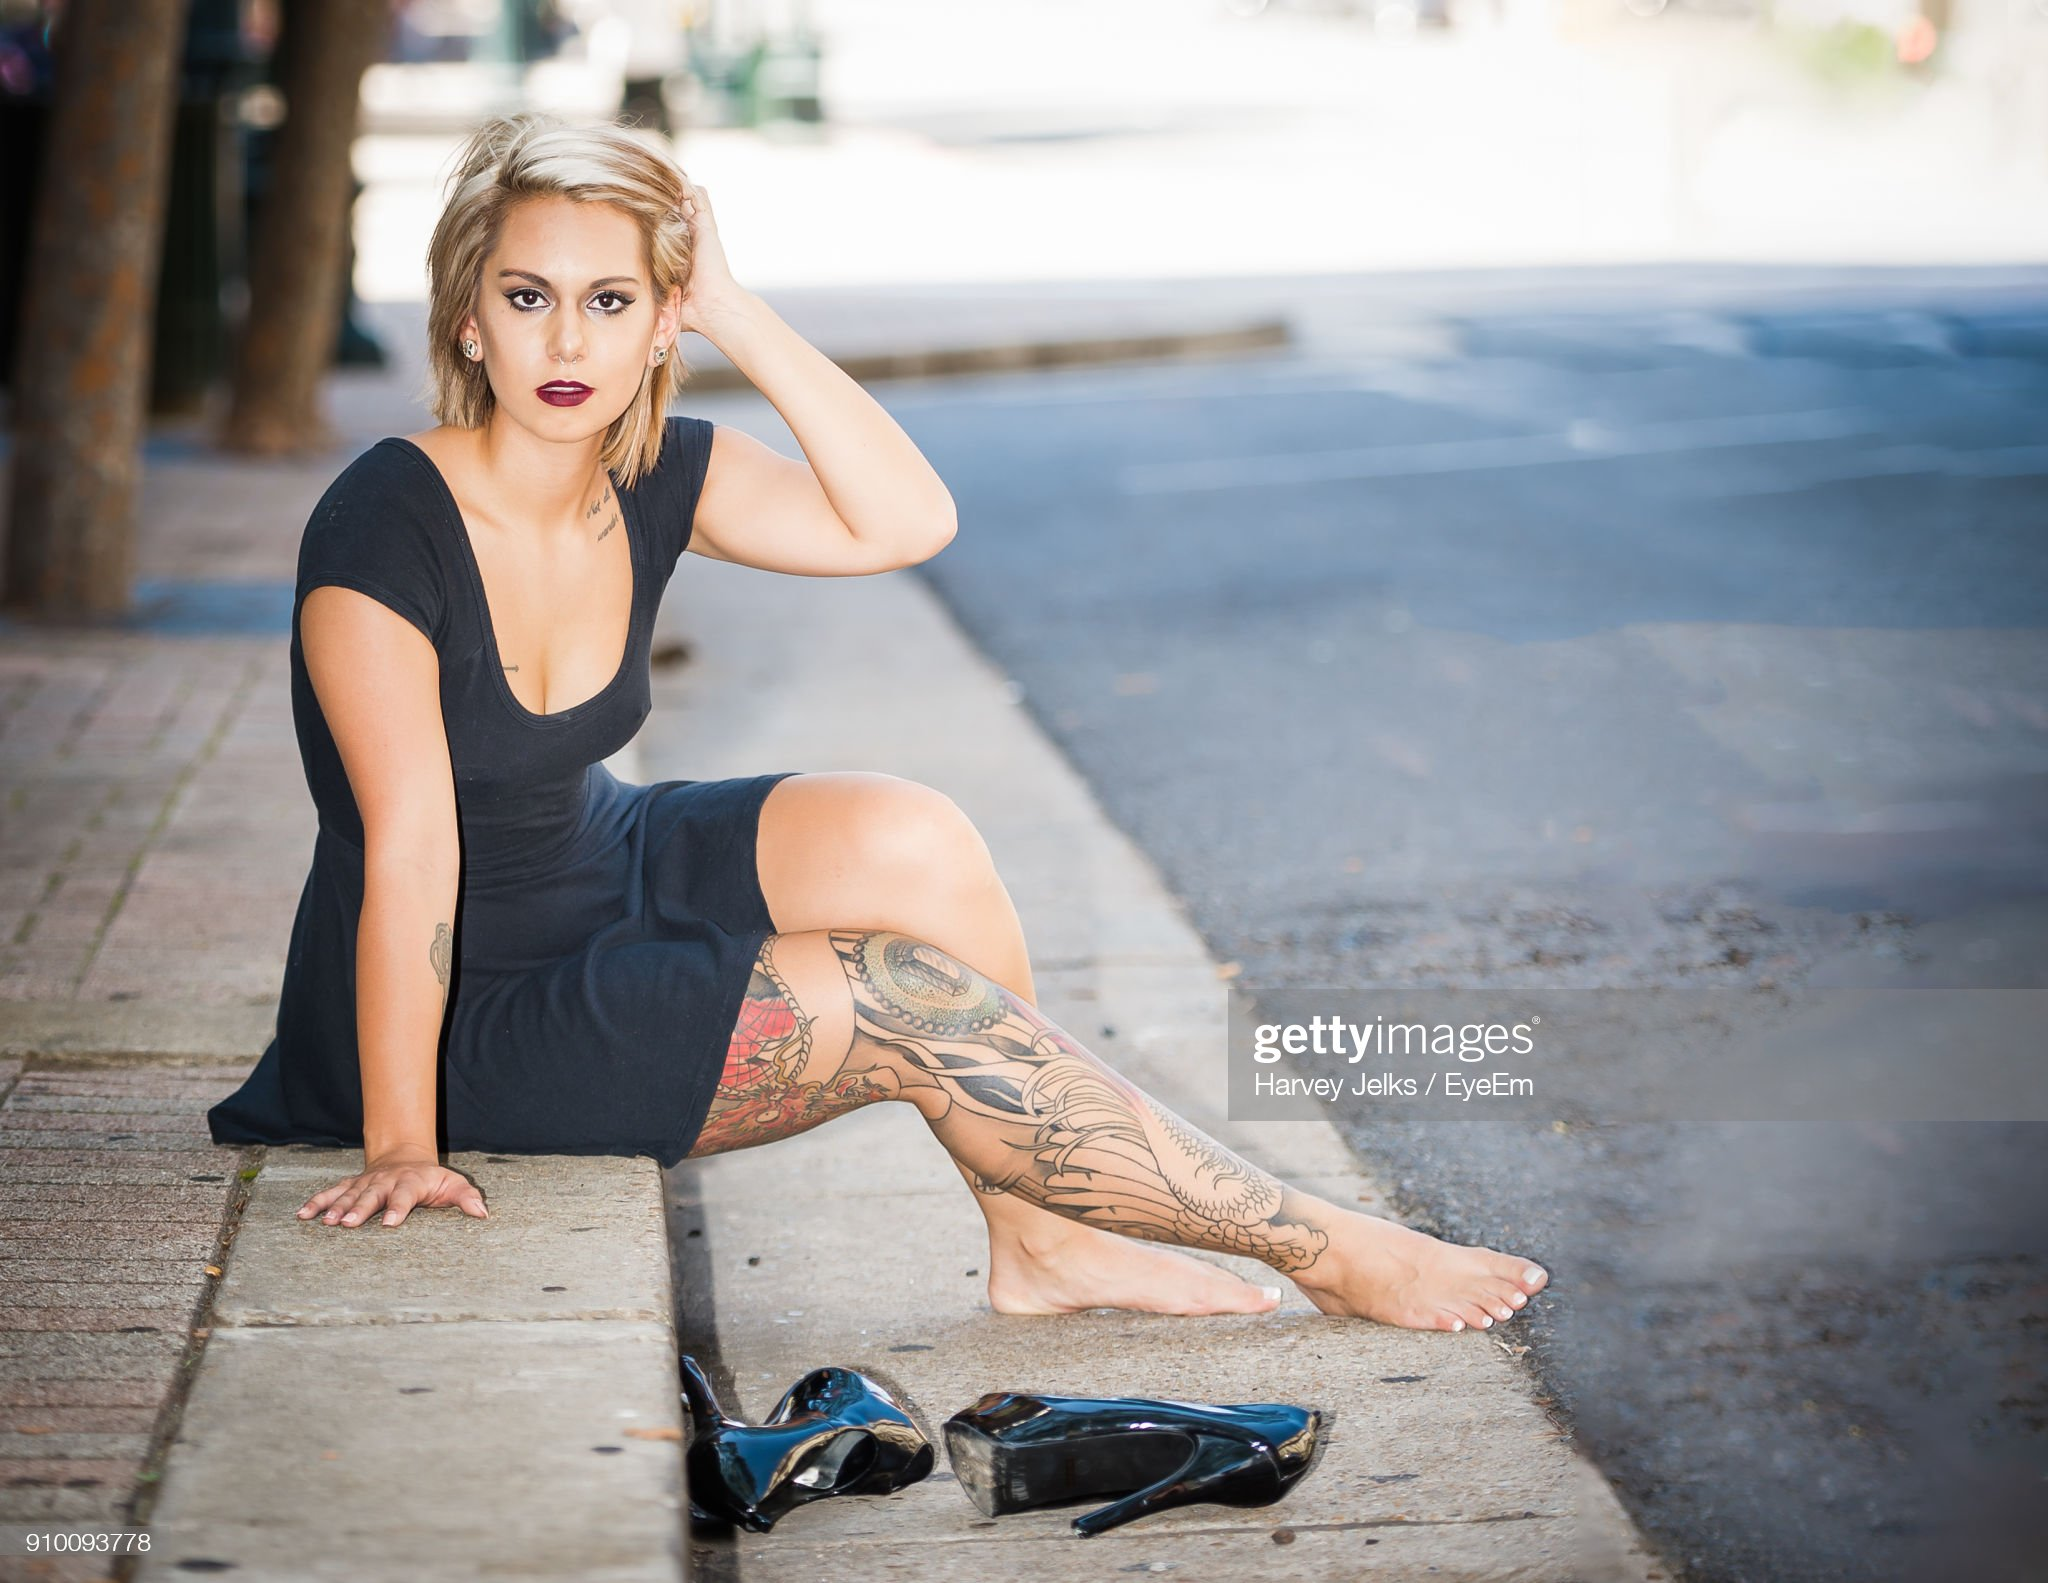 https://media.gettyimages.com/photos/portrait-of-young-woman-sitting-on-sidewalk-picture-id910093778?s=2048x2048